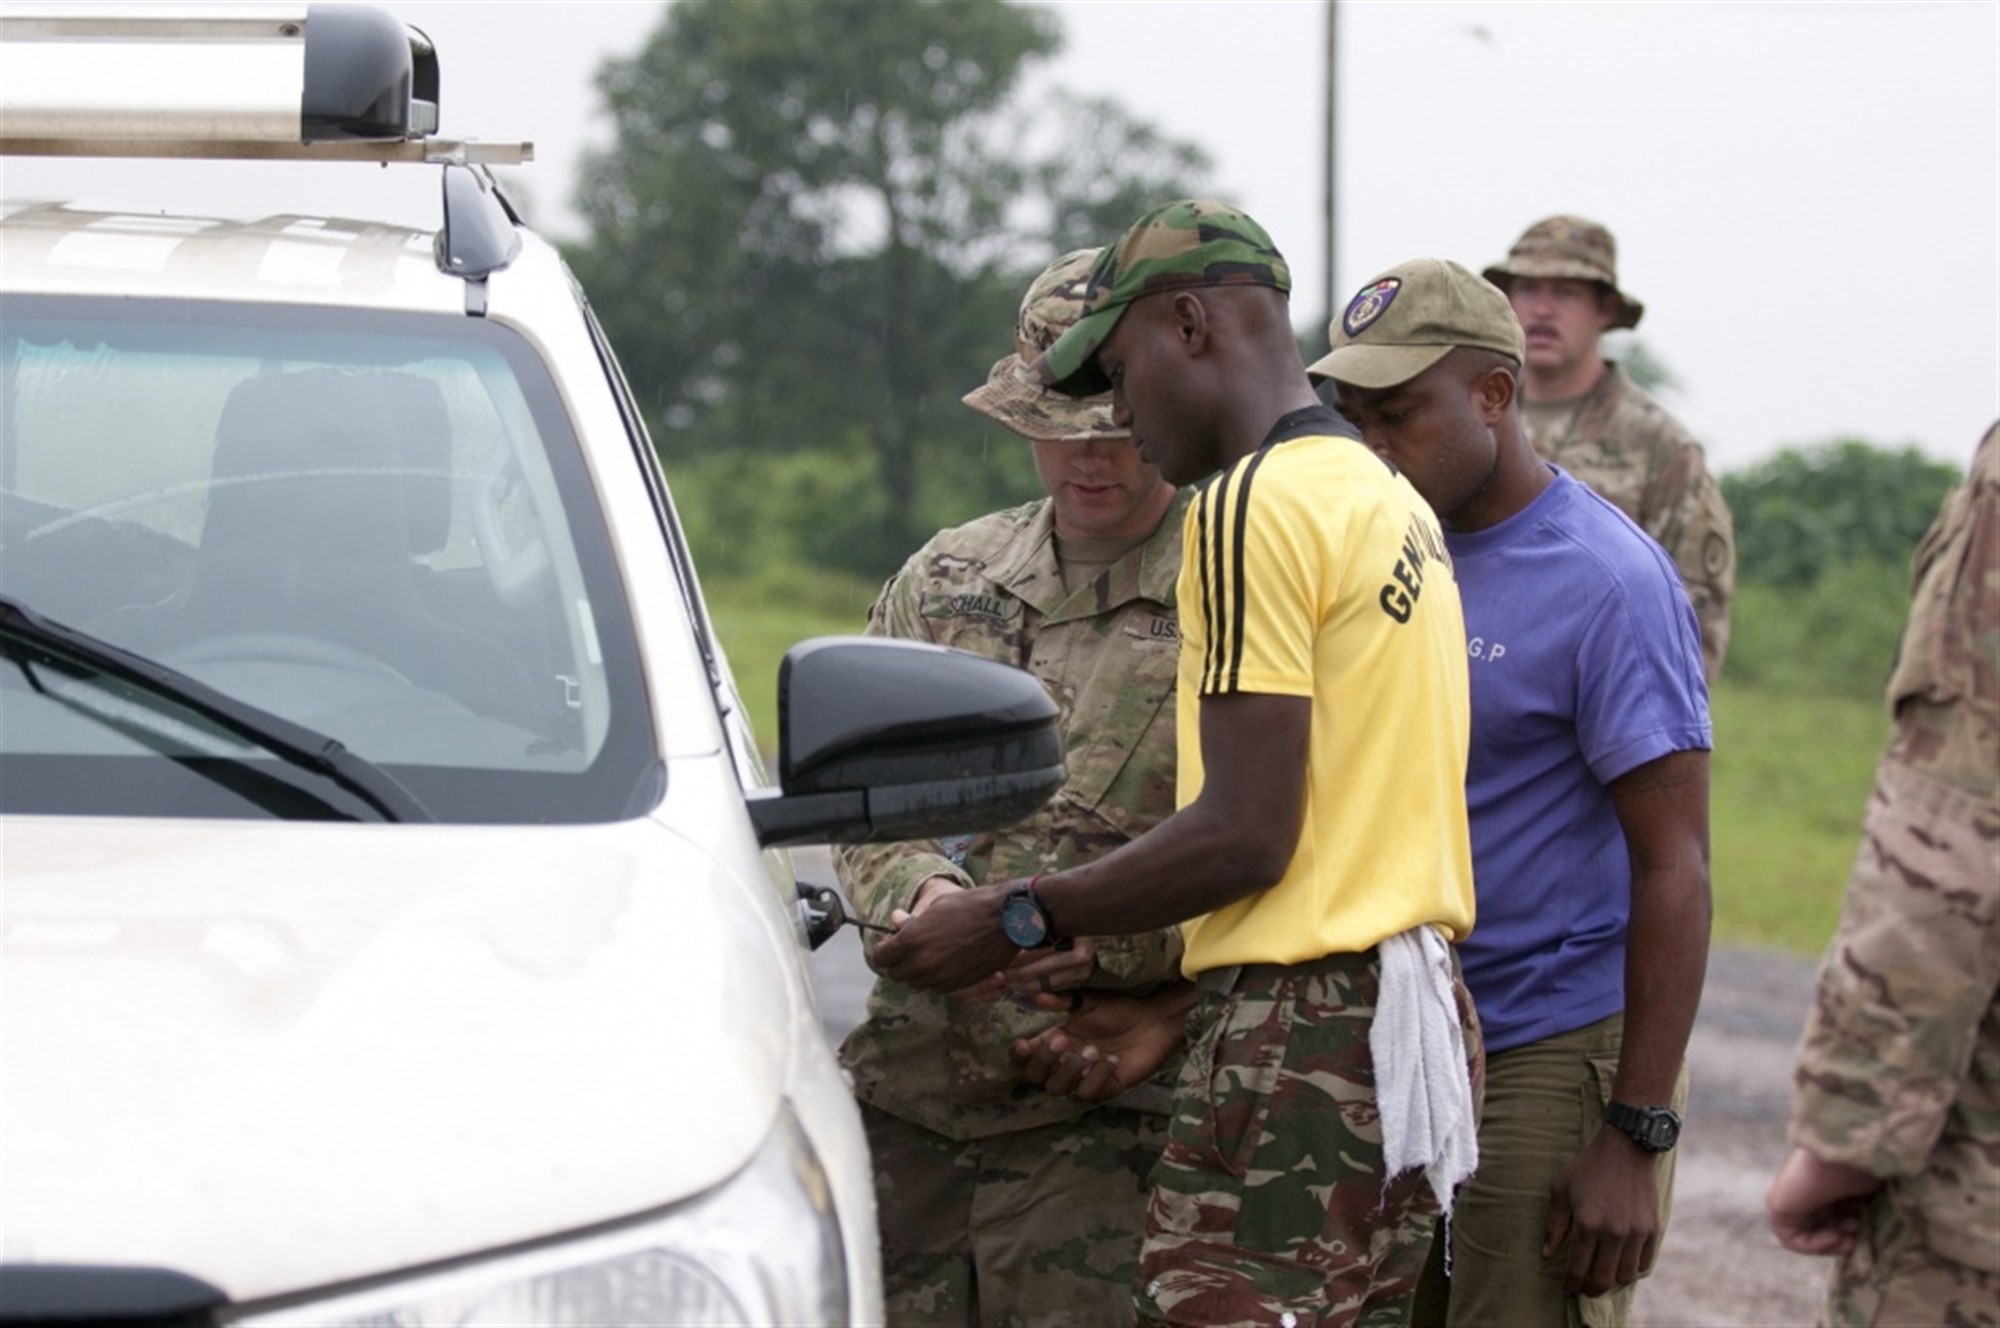 DOUALA, Cameroon -- Army 1st Lt. Jacob Schall, left, a platoon leader for the 764th Ordnance Company from Fort Carson, Colo., instructs Cameroonian troops how to handle vehicle-borne improvised explosive devices during Exercise Counter Improvised Explosive Device-Defeat Phase I in Douala, Cameroon, Nov. 15, 2017. Army photo by Sgt. 1st Class Alexandra Hays